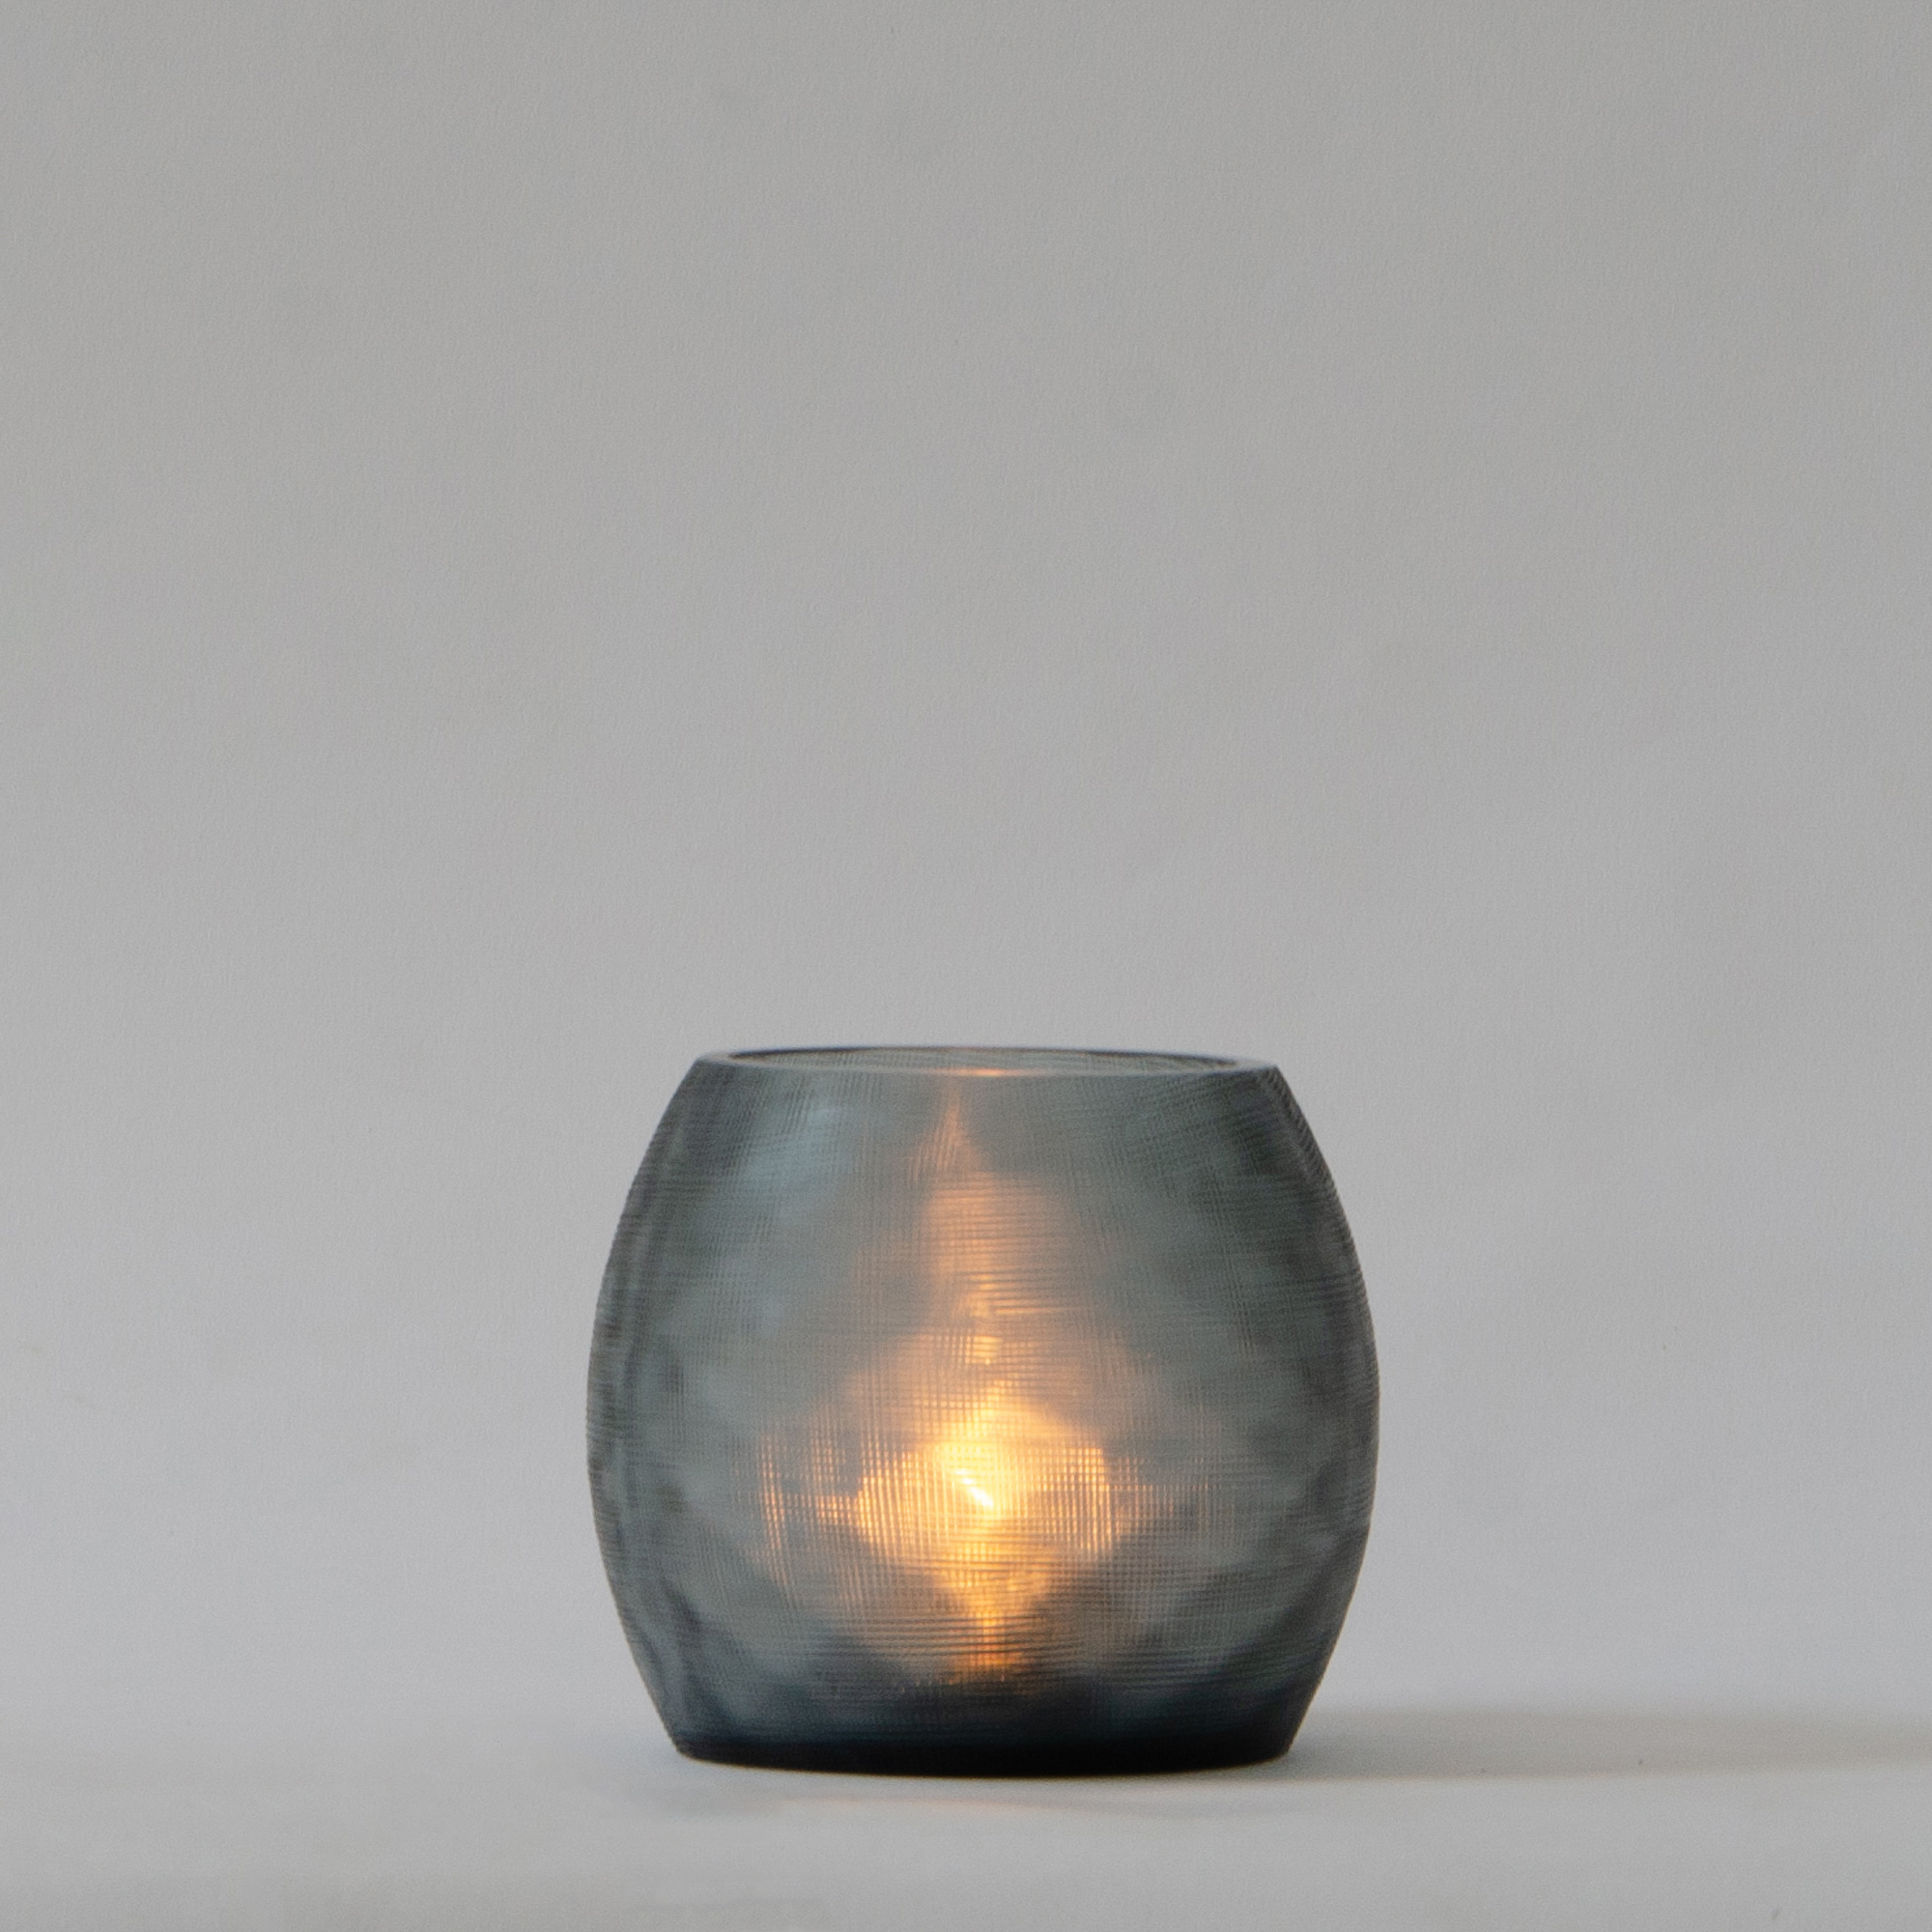 Mosaic Glass Candle Holder - Teal